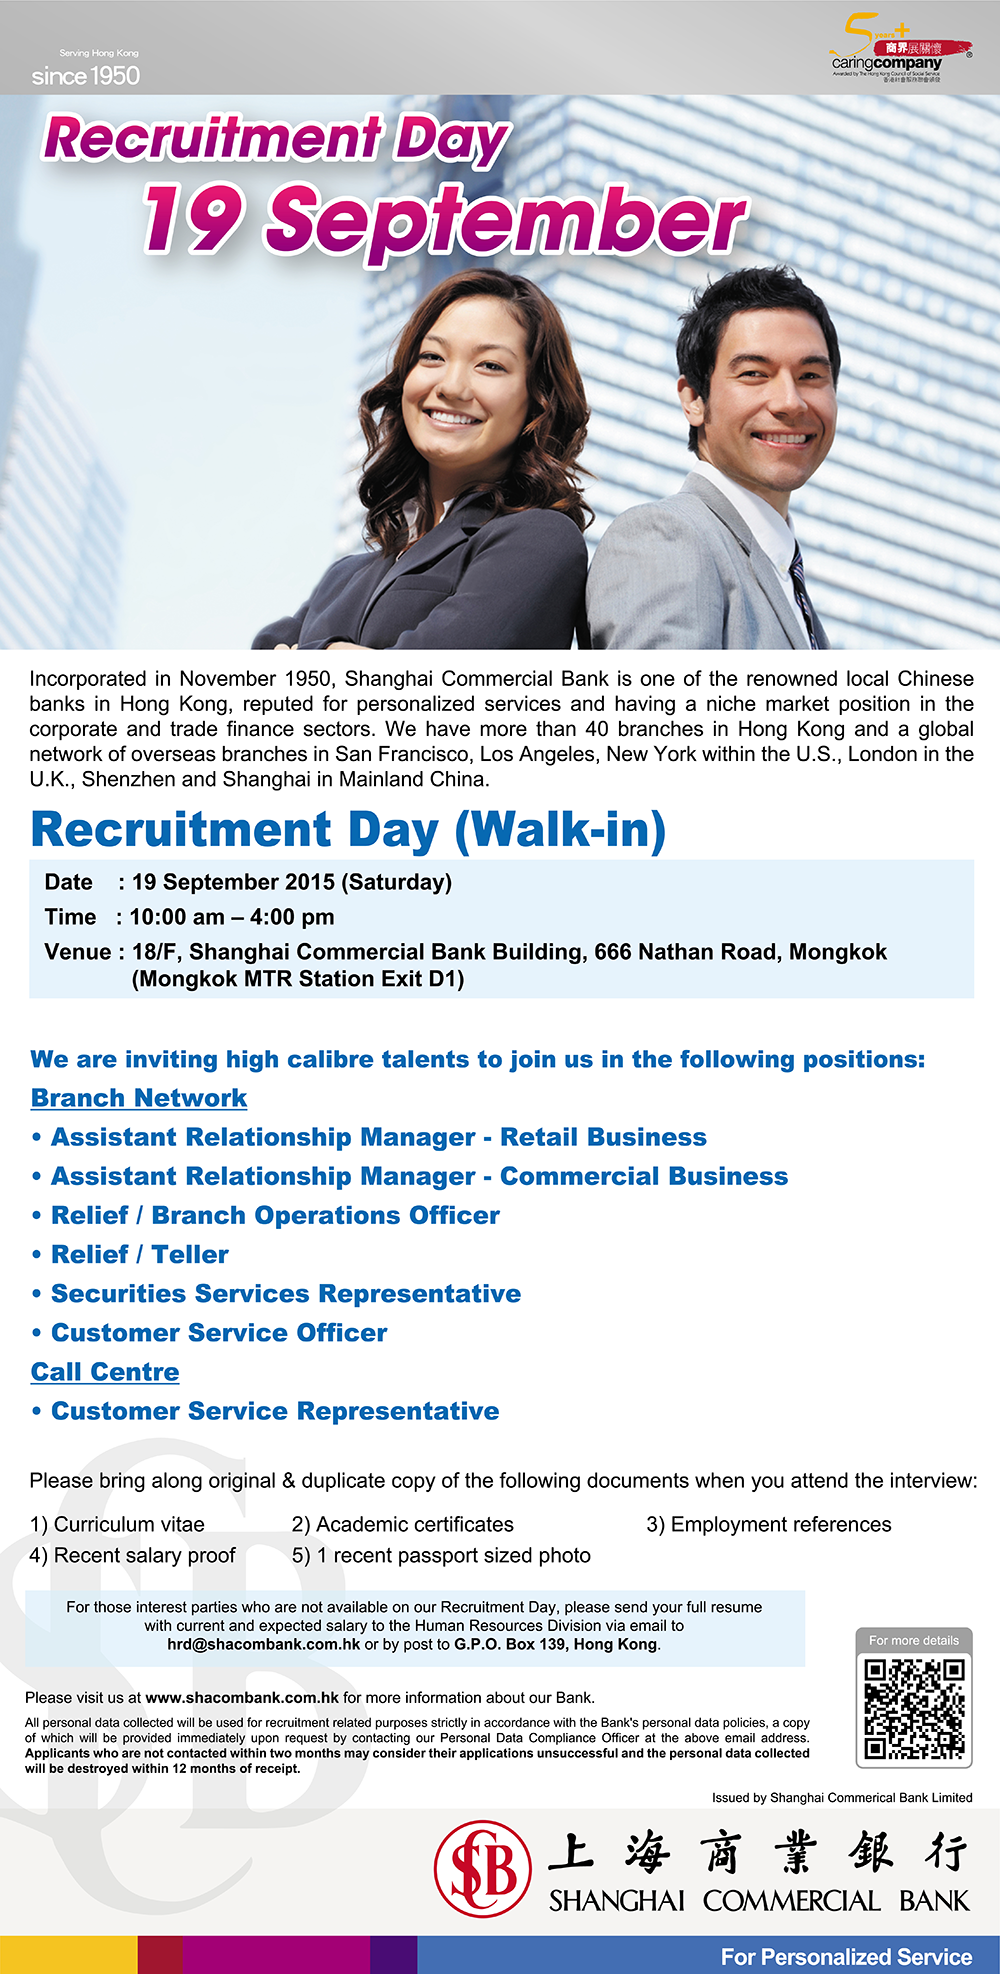 Recruitment Day on 19 September 2015 offered by Shanghai Commercial Bank